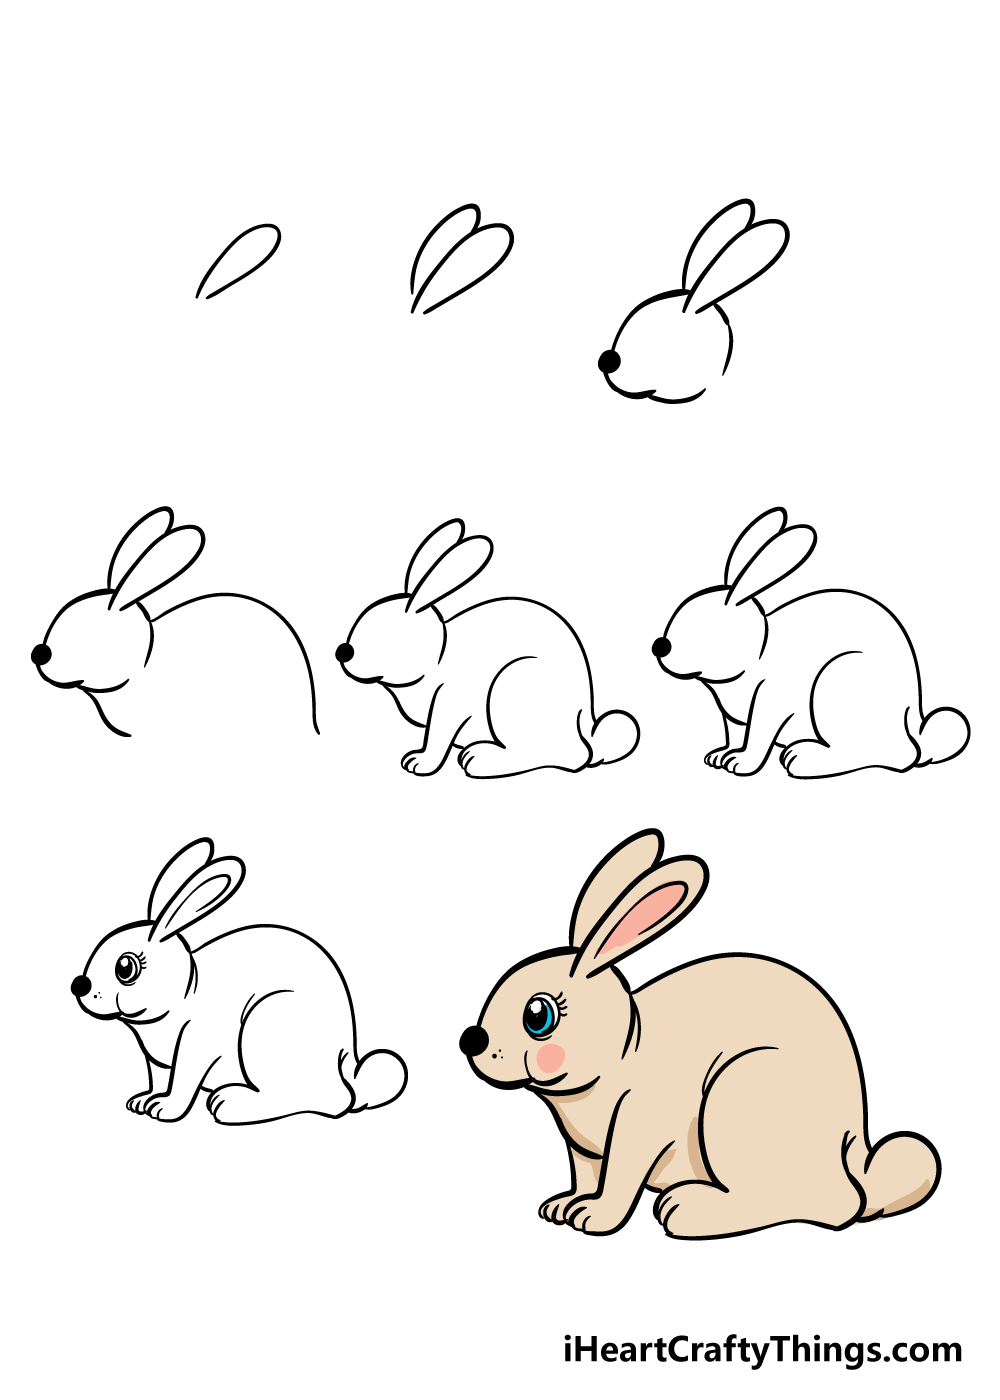 how to draw rabbit in 8 steps